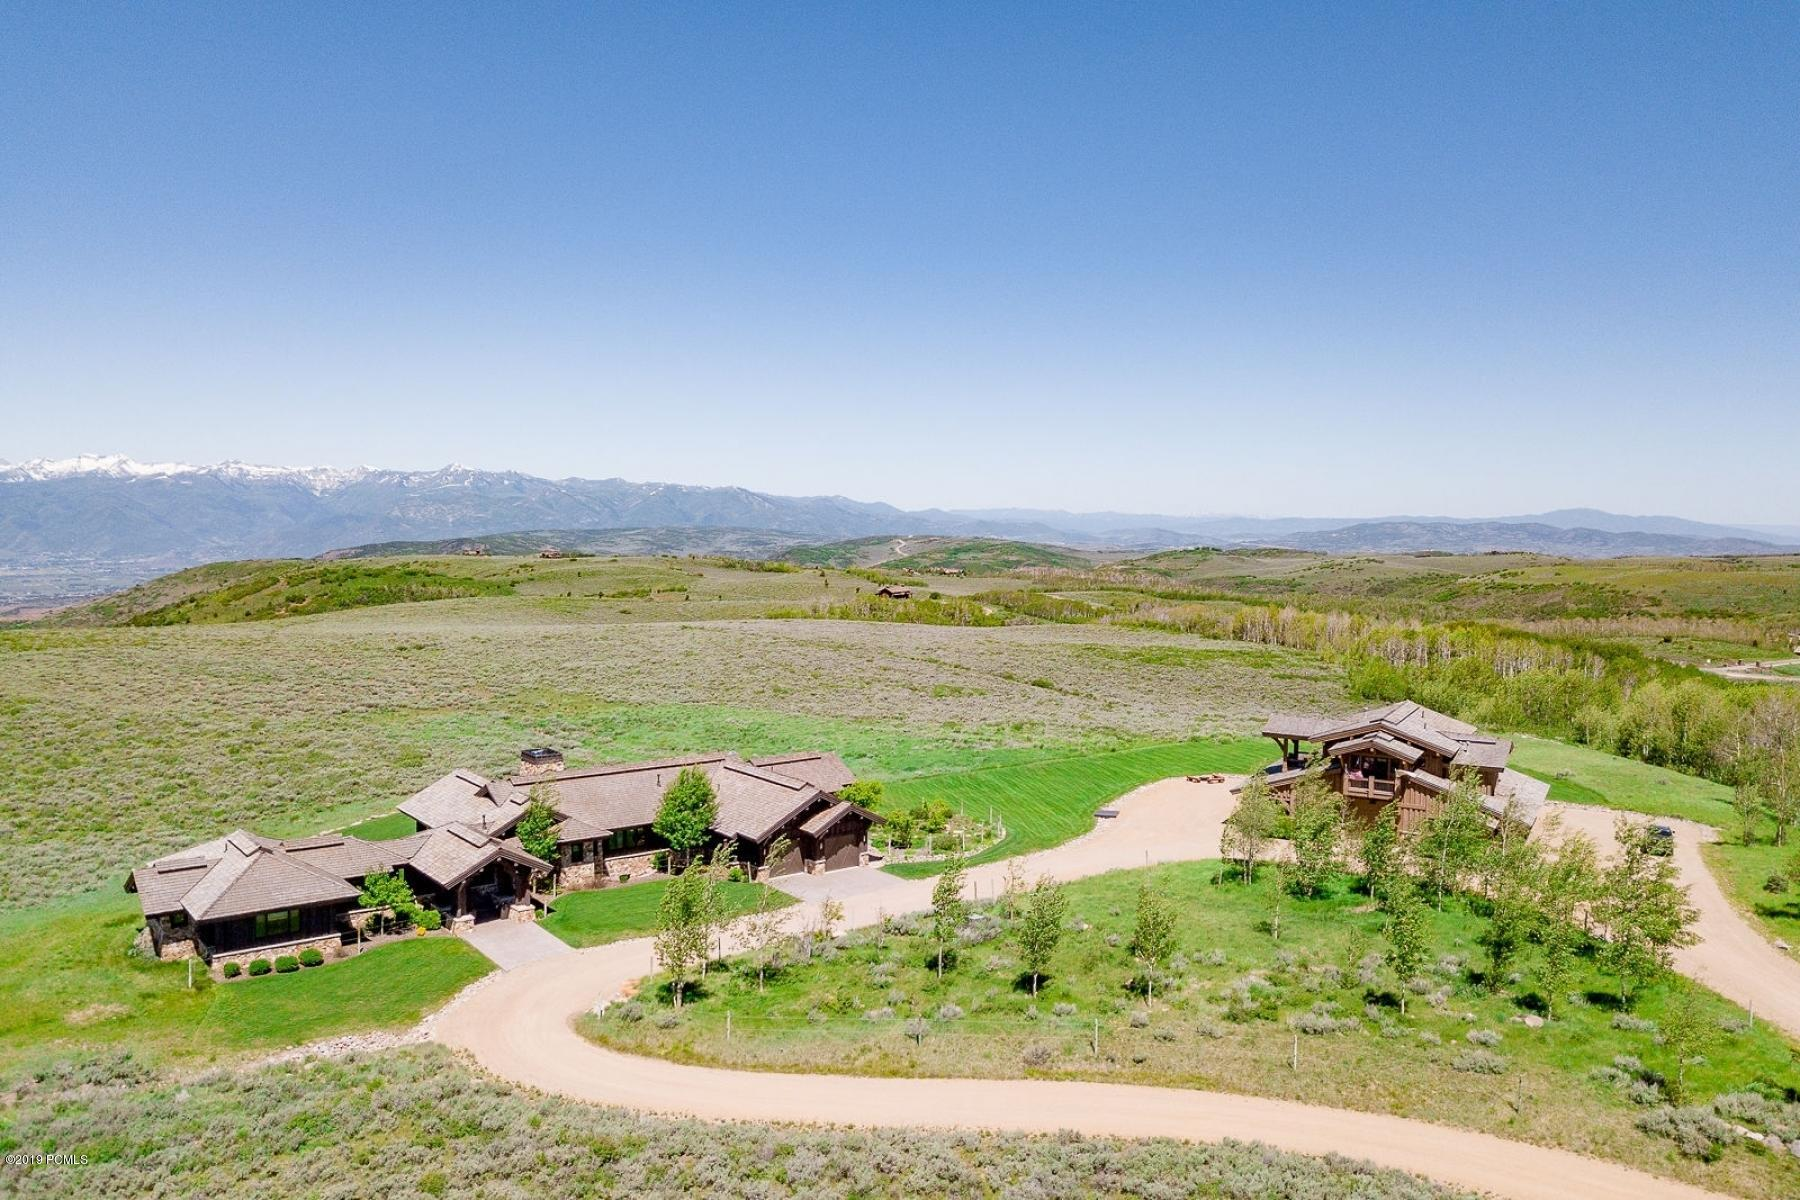 10290 Forest Creek Rd #46, Woodland, Utah 84036, 6 Bedrooms Bedrooms, ,9 BathroomsBathrooms,Single Family,For Sale,Forest Creek Rd #46,20190109112430415765000000